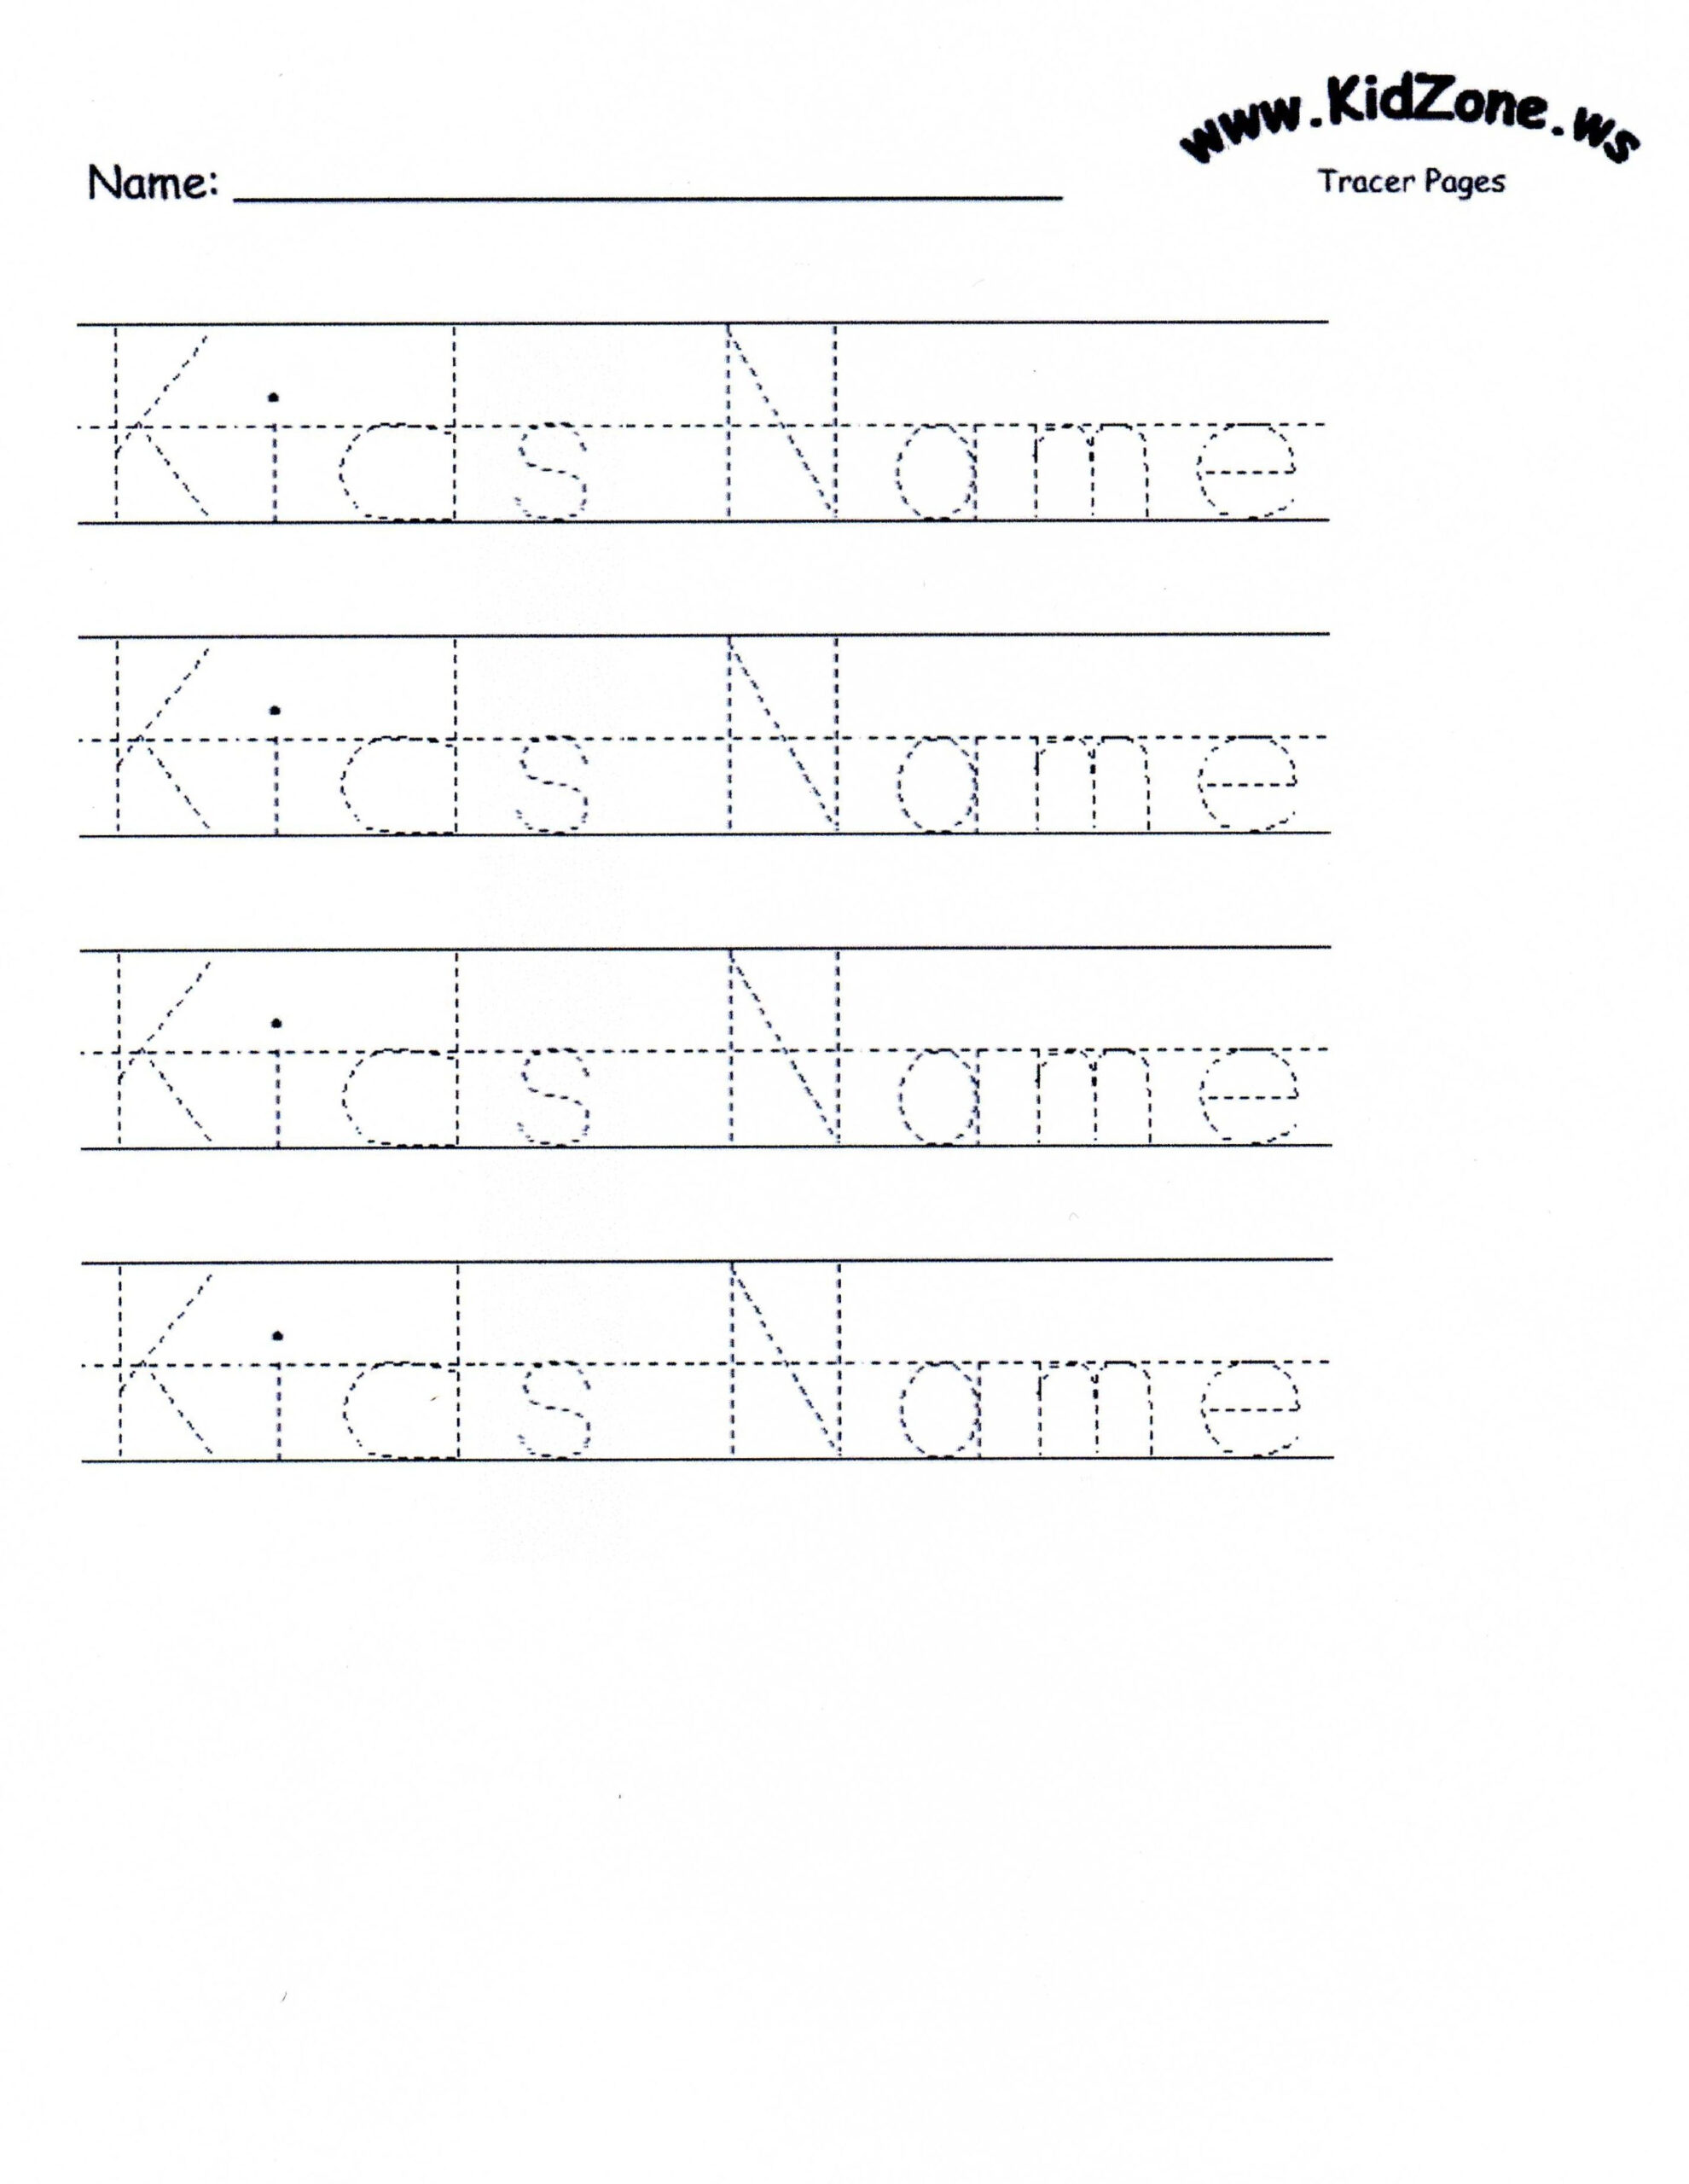 Name Tracing Worksheets For Printable. Name Tracing with Name Tracing Activities